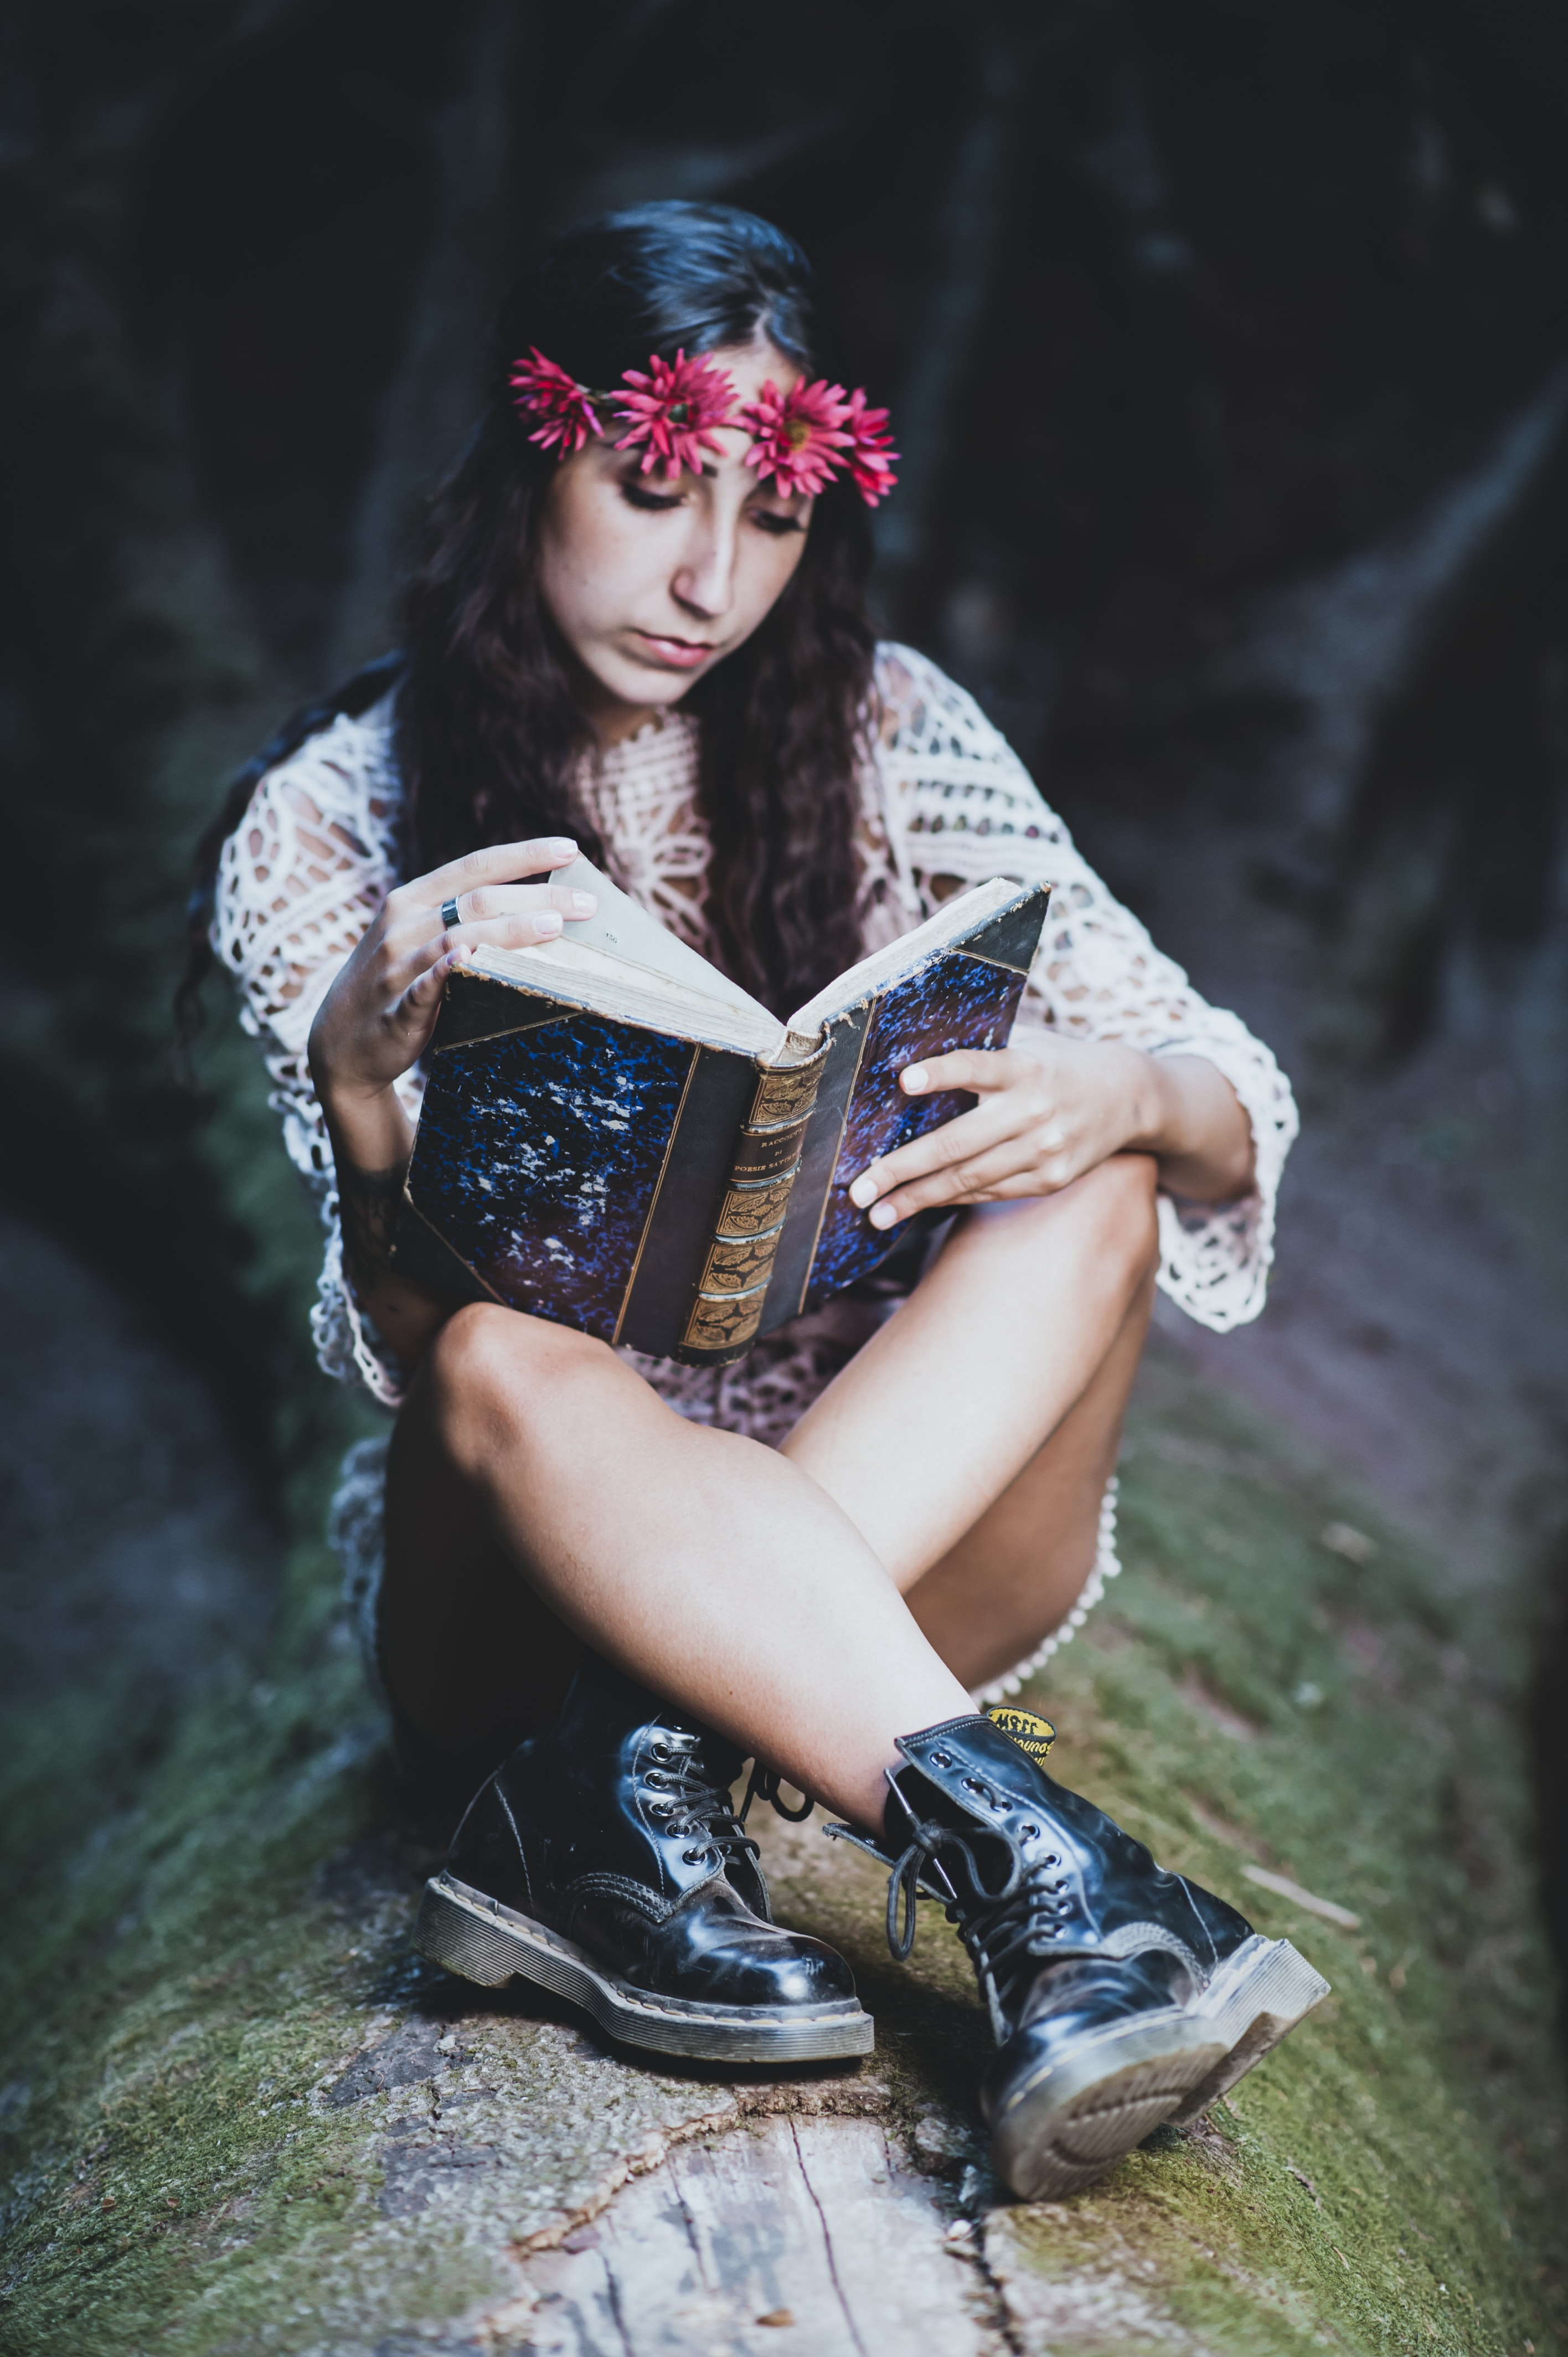 woman wearing white long-sleeved blouse and black leather work boots reading blue and brown book